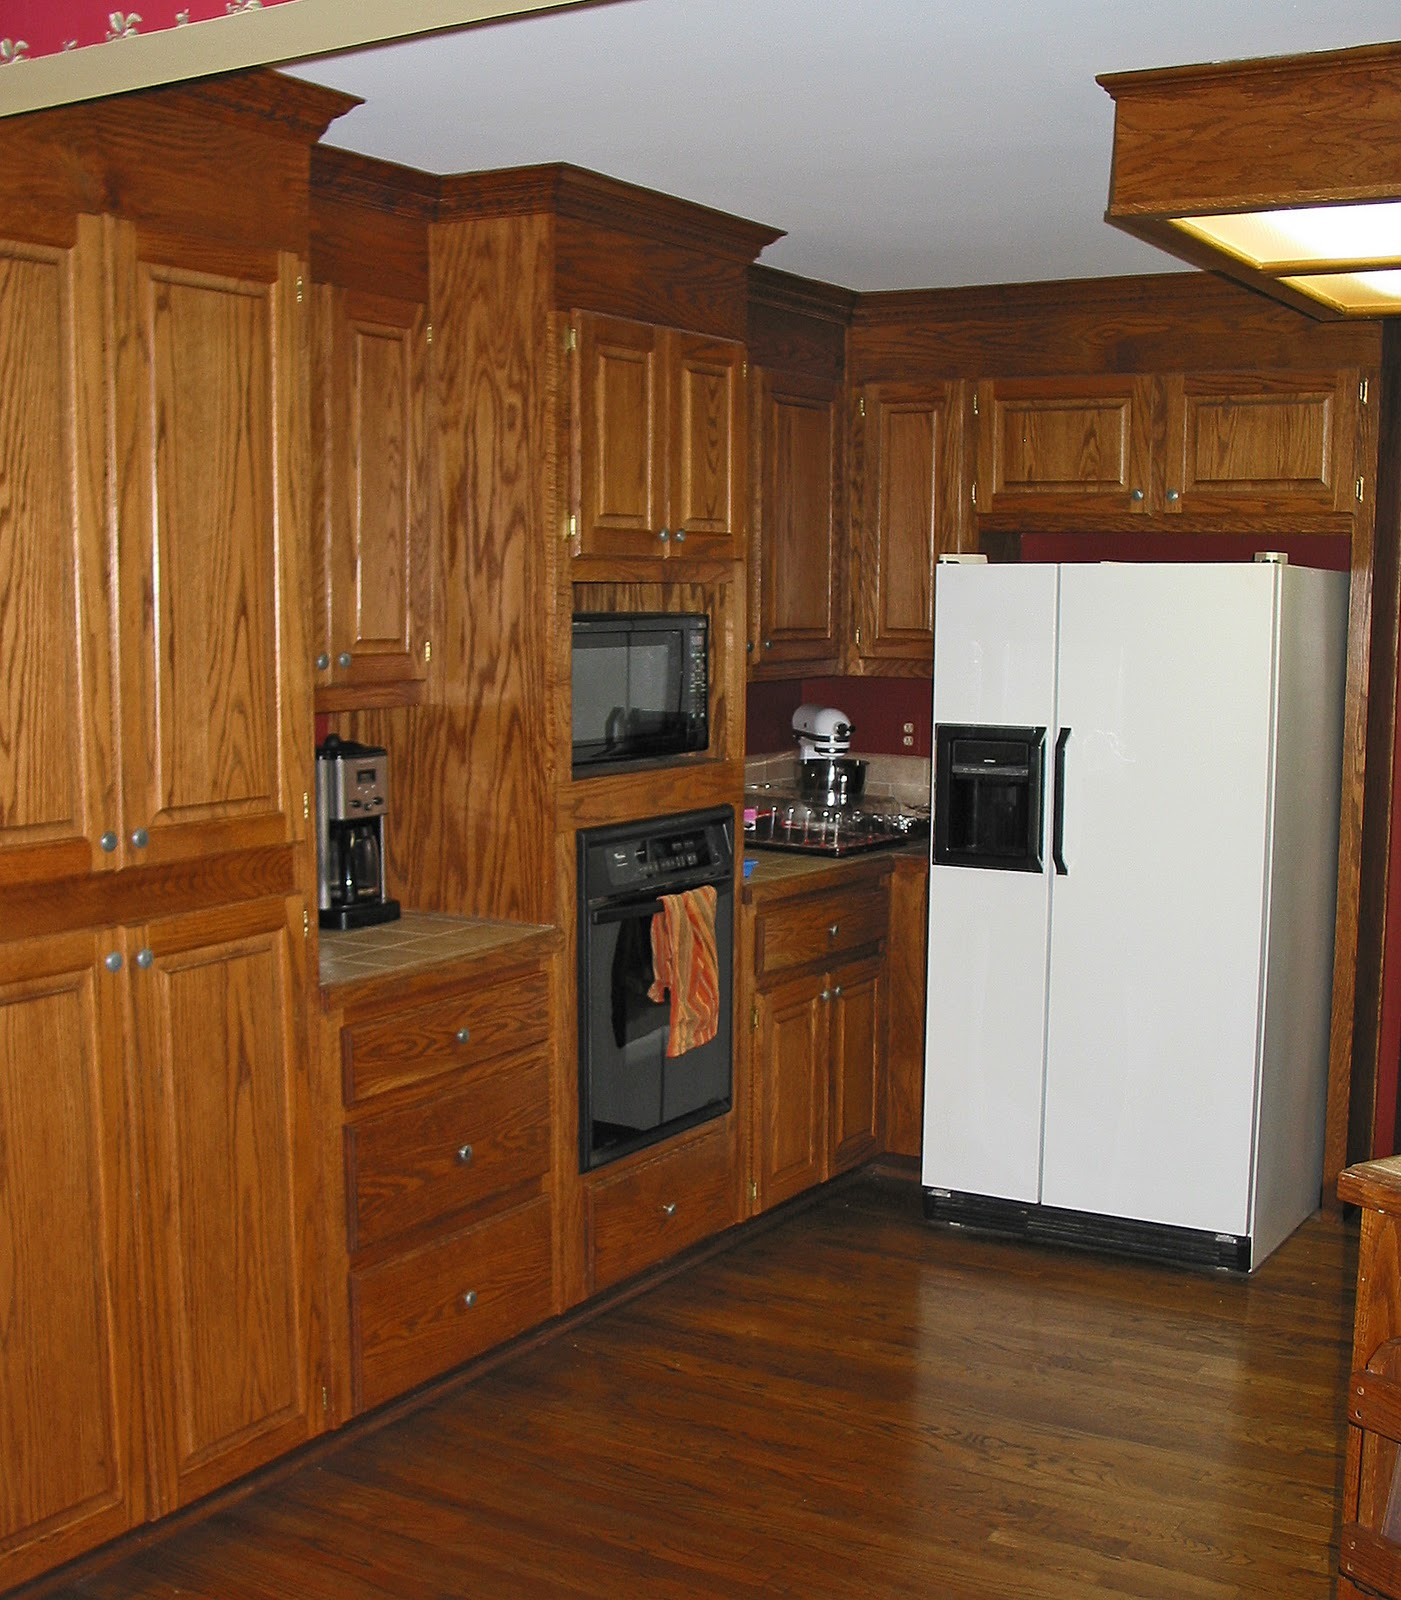 Staging Kitchen Counters: Goodbye, House. Hello, Home! Blog : Home Staging -- A